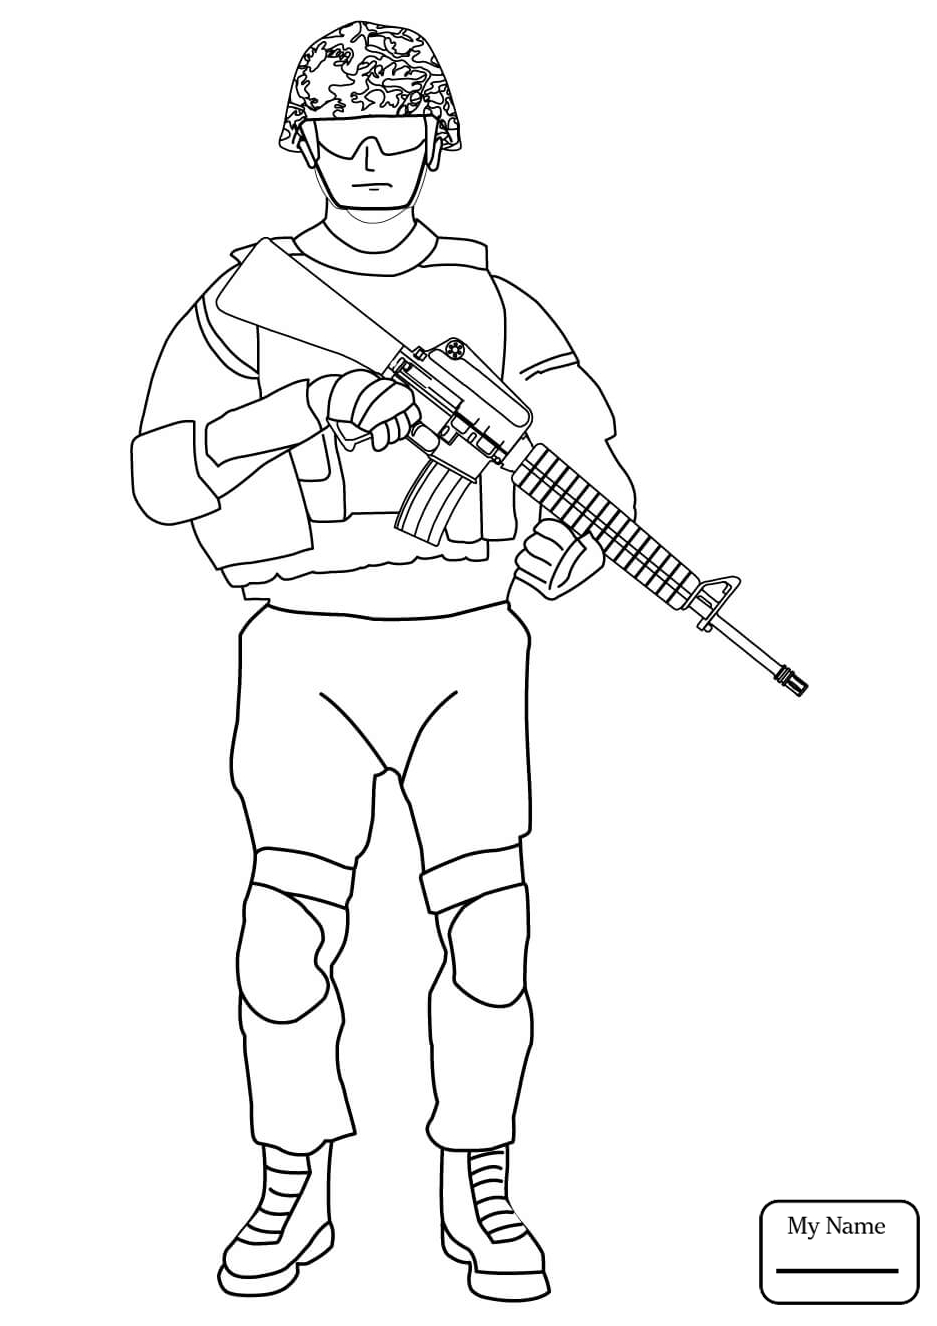 937x1326 Growth Soldier Coloring Pages To Print British